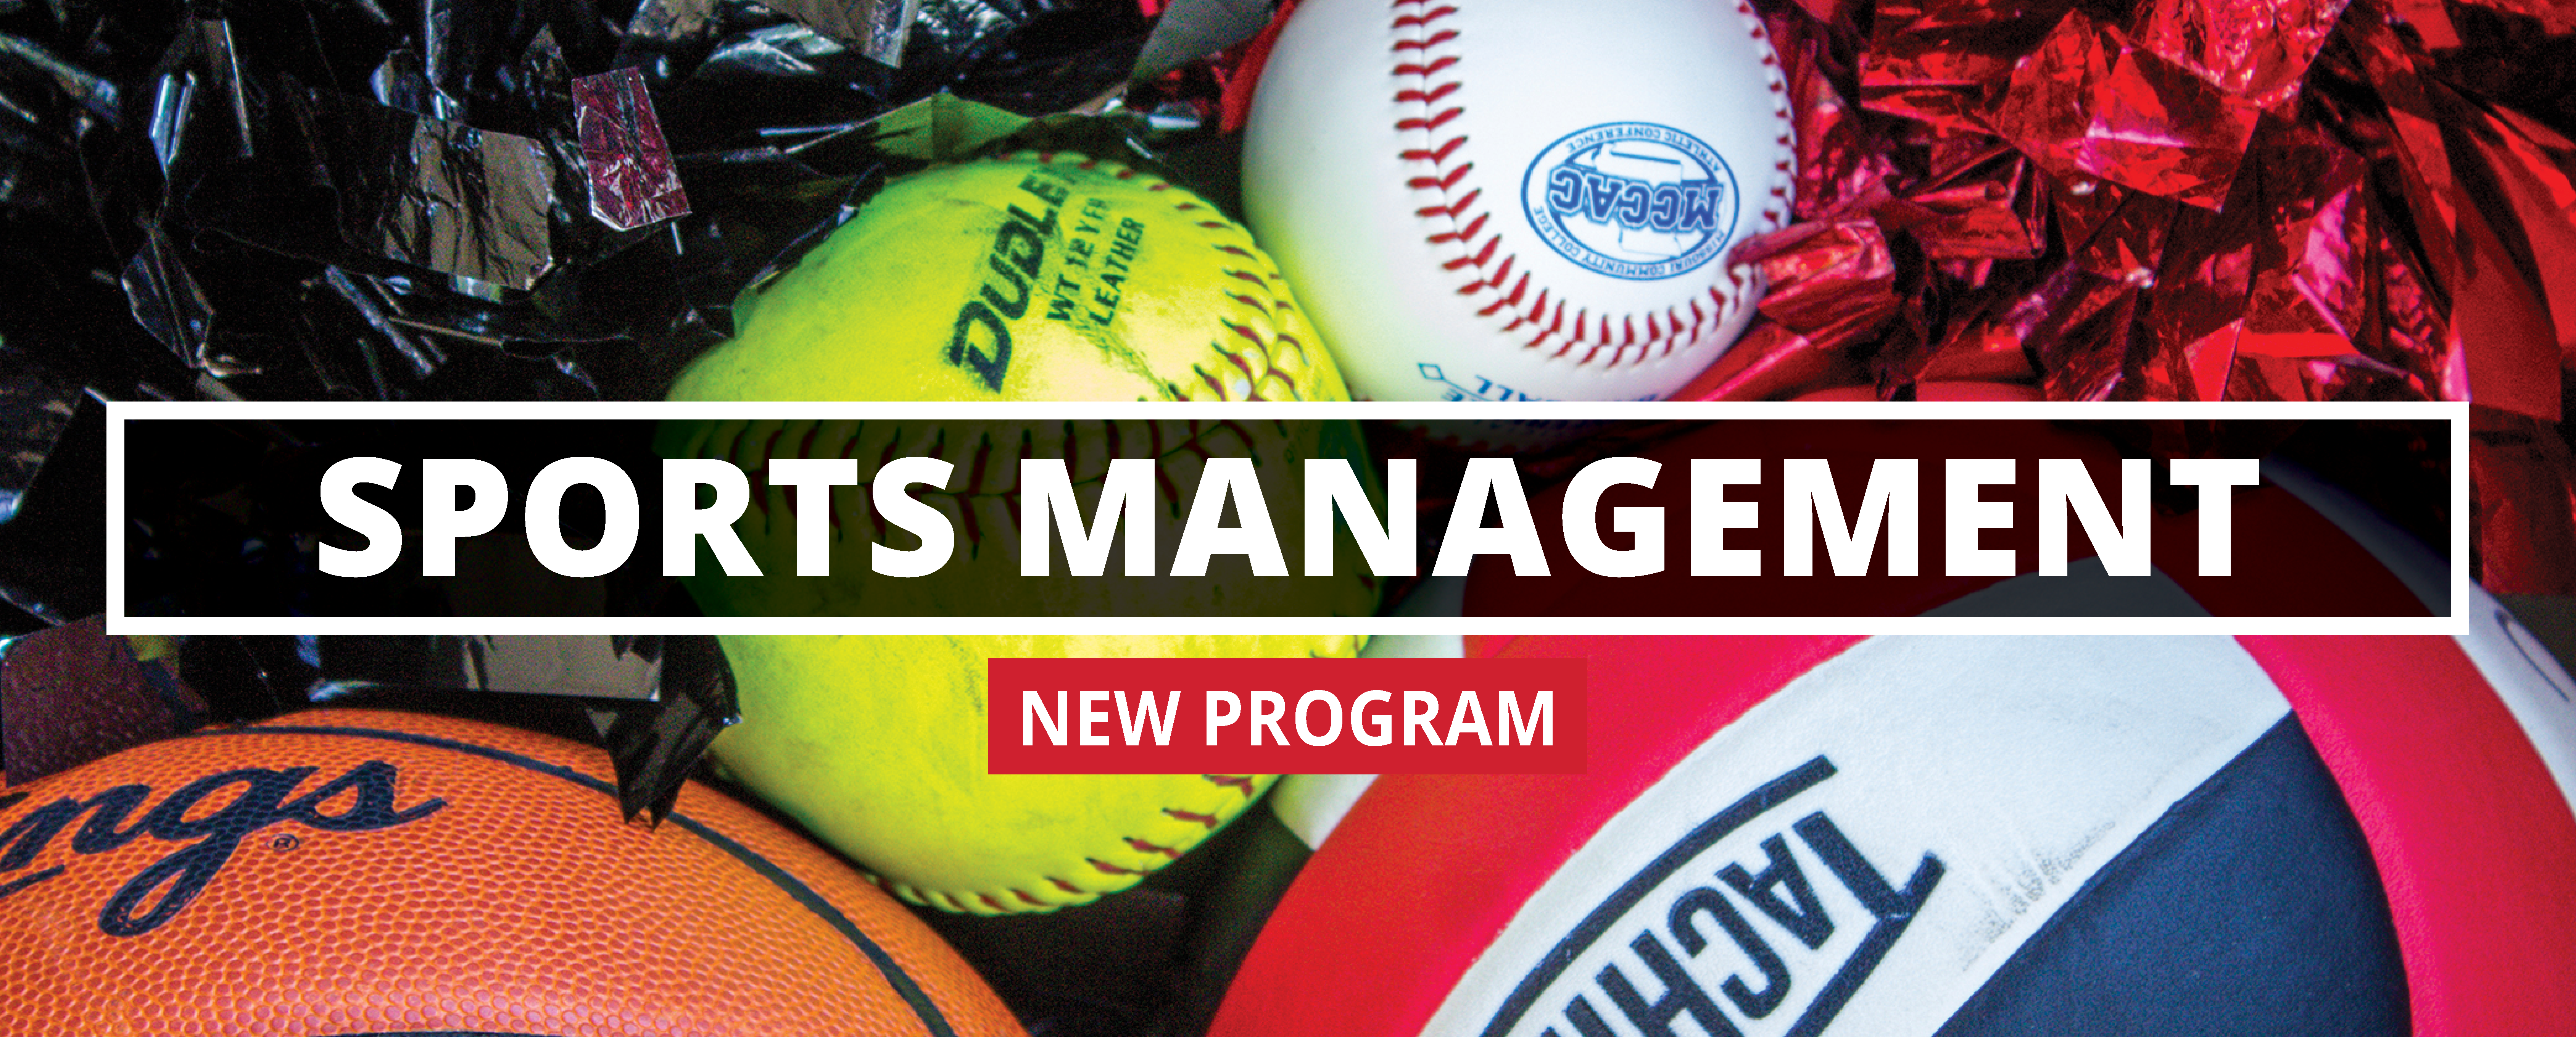 sports management ad w text.png